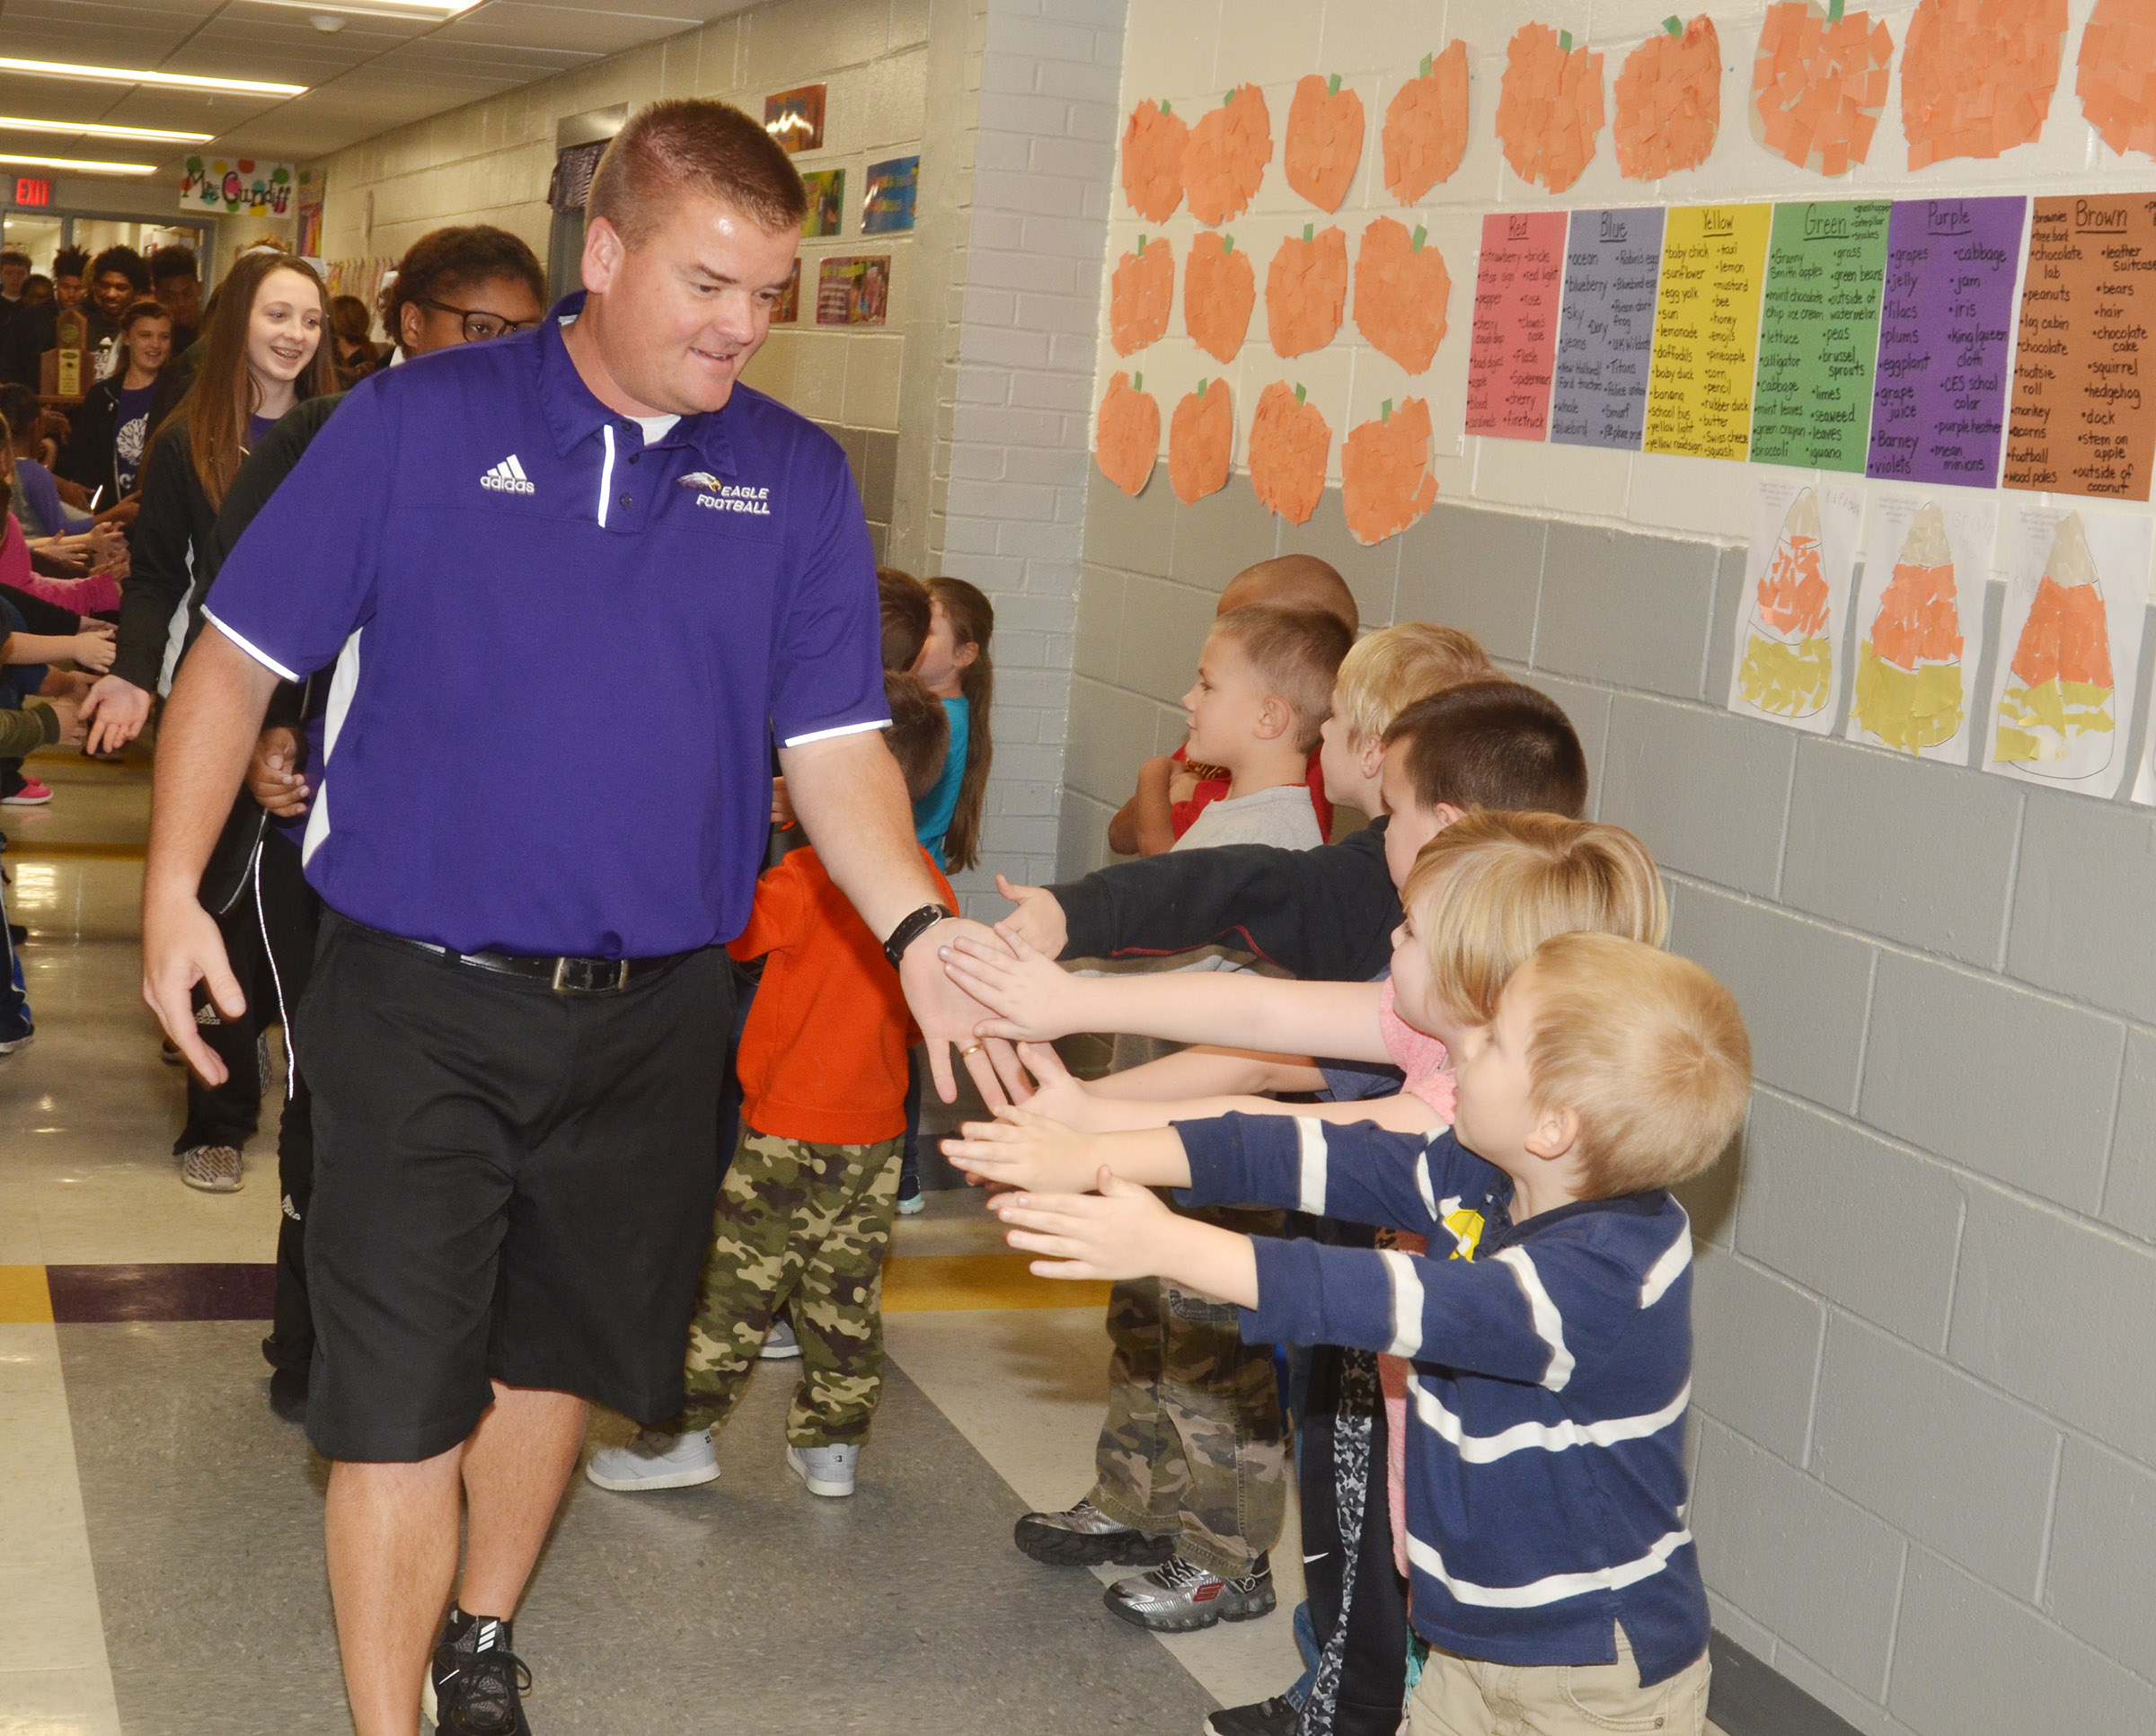 CHS head football coach Dale Estes leads the Eagle Walk through CES.